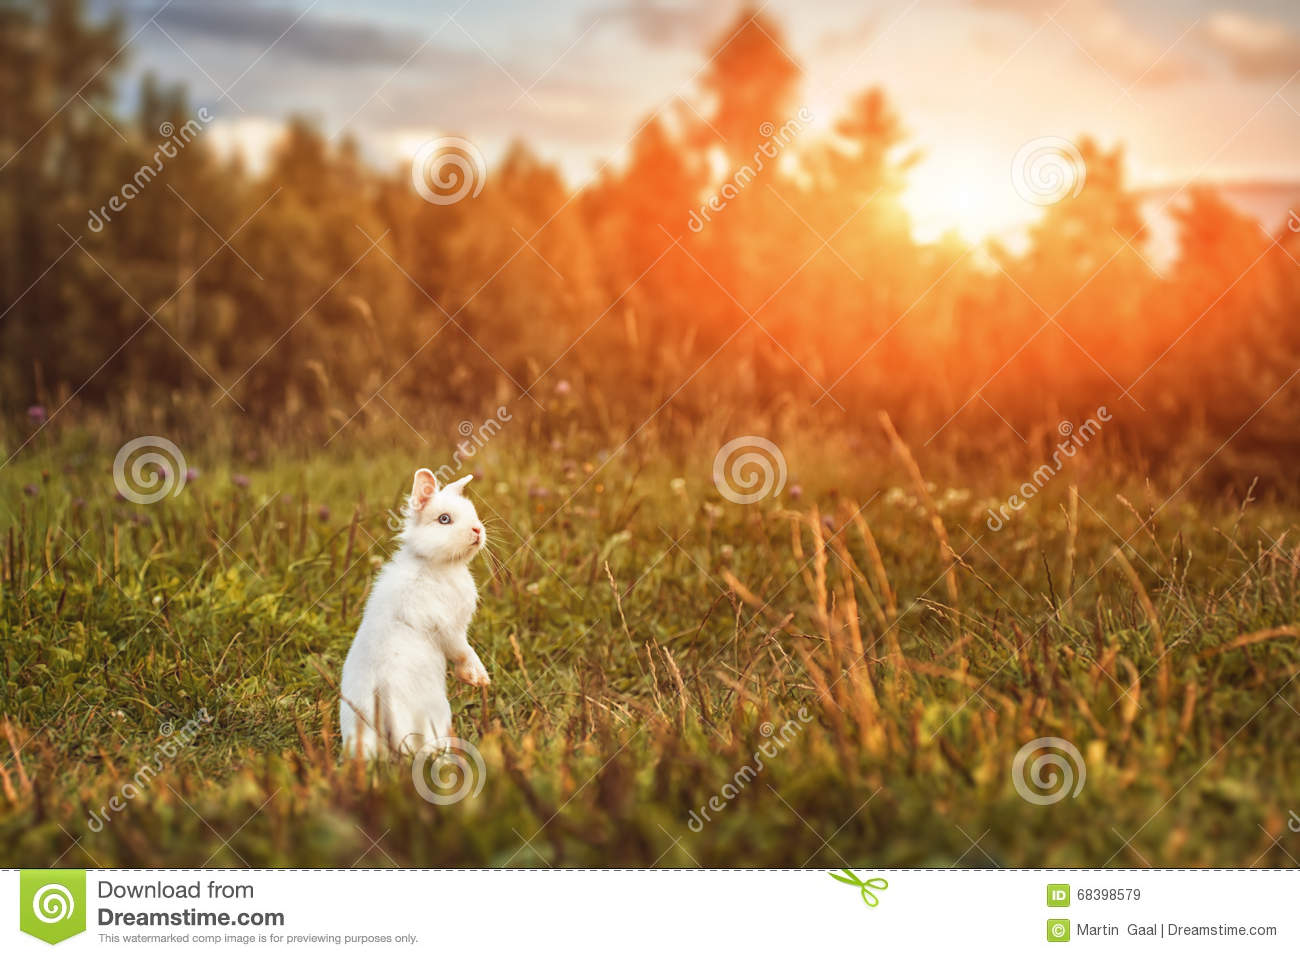 White Rabbit Or Bunny On Green Meadow In Nature Happy Easter Symbol